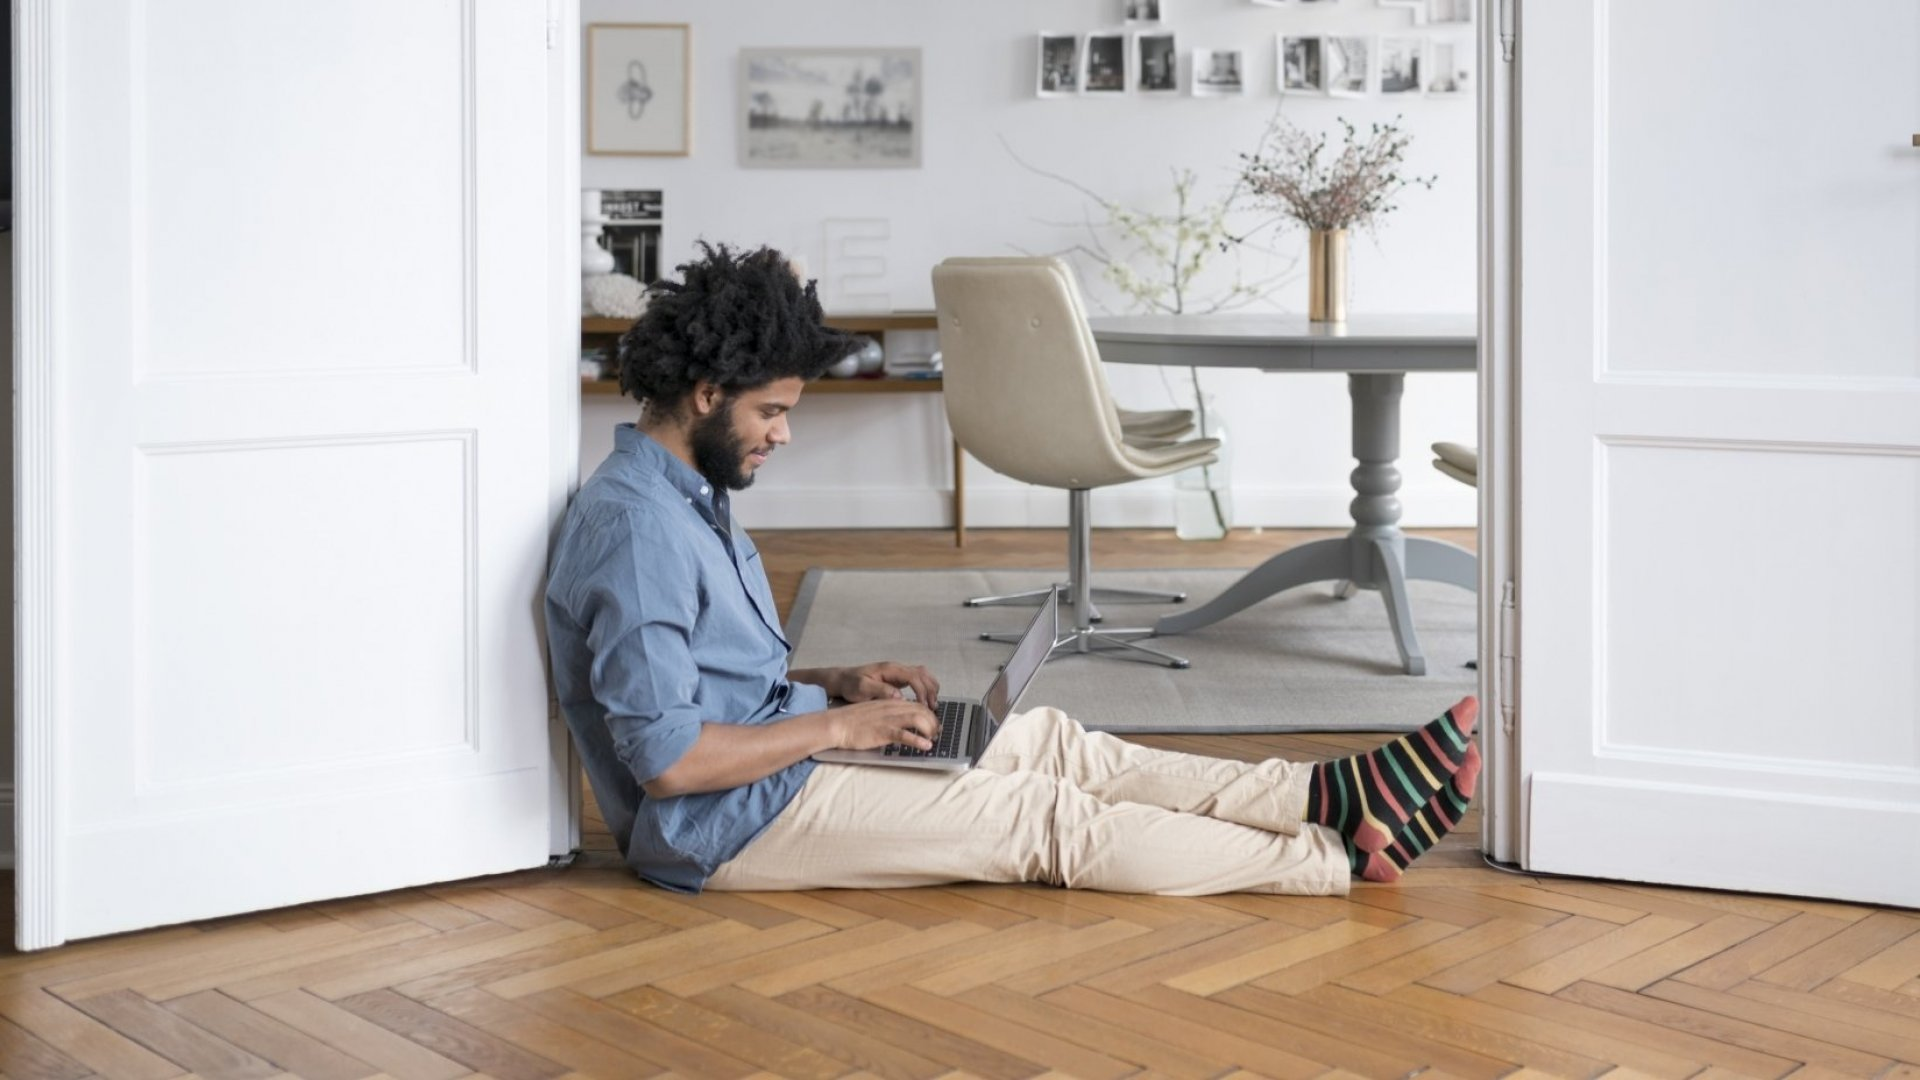 How to Avoid the Negative Psychological Effects of Remote Work